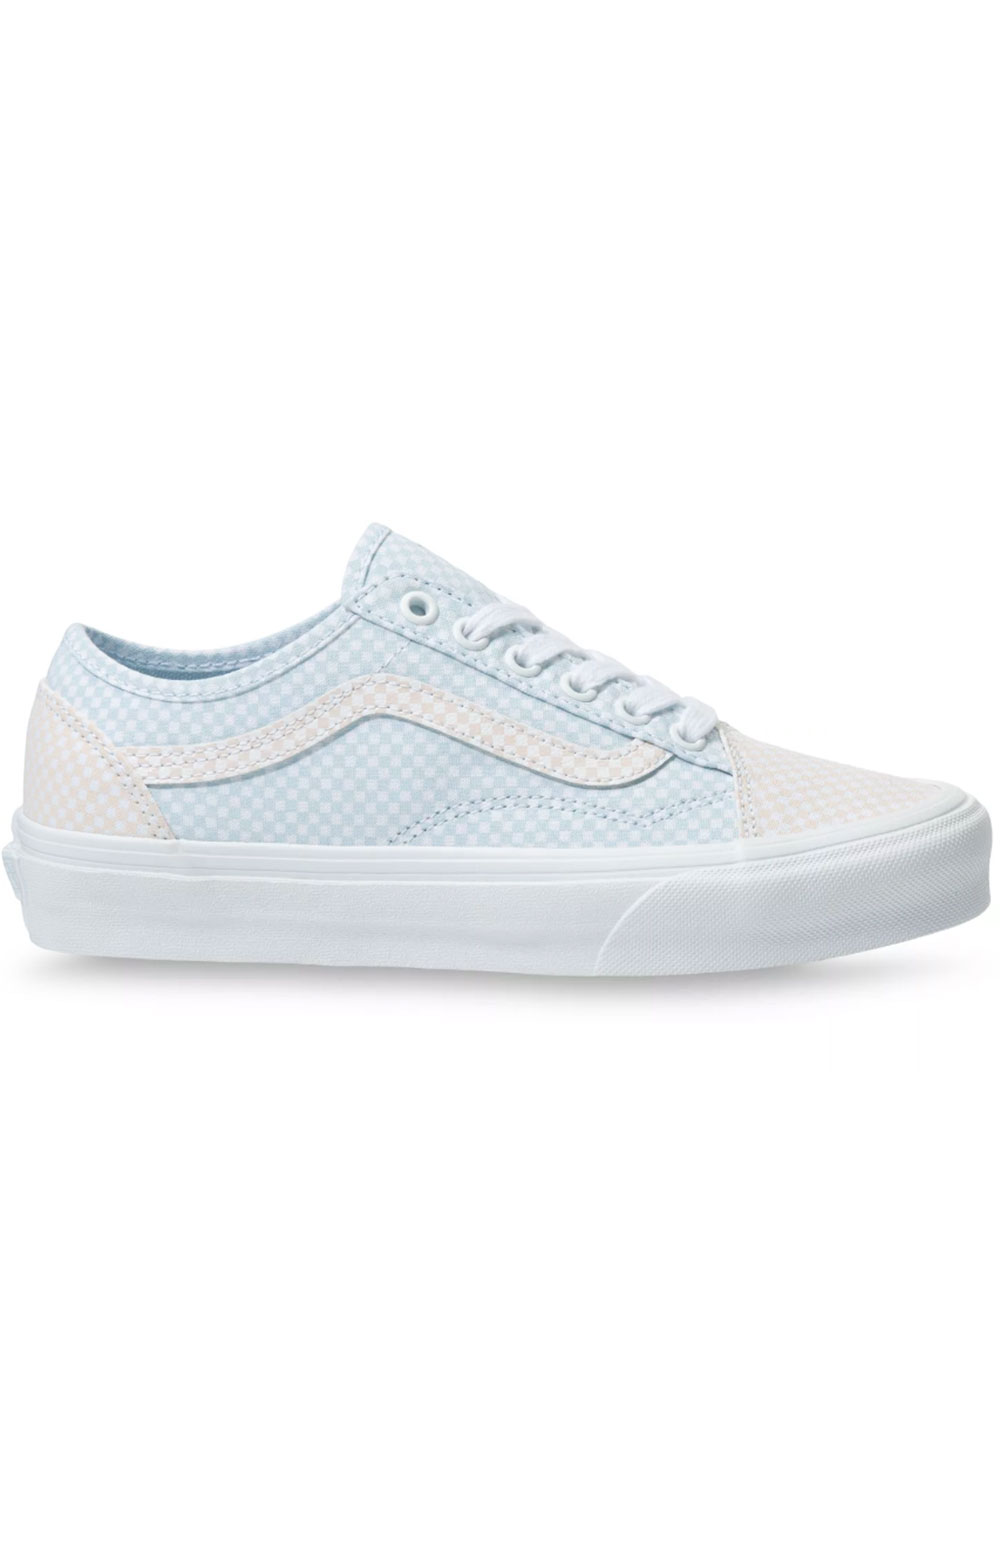 (4F44TZ) Pastel Checkerboard Old Skool Tapered Shoes - Ballad Blue